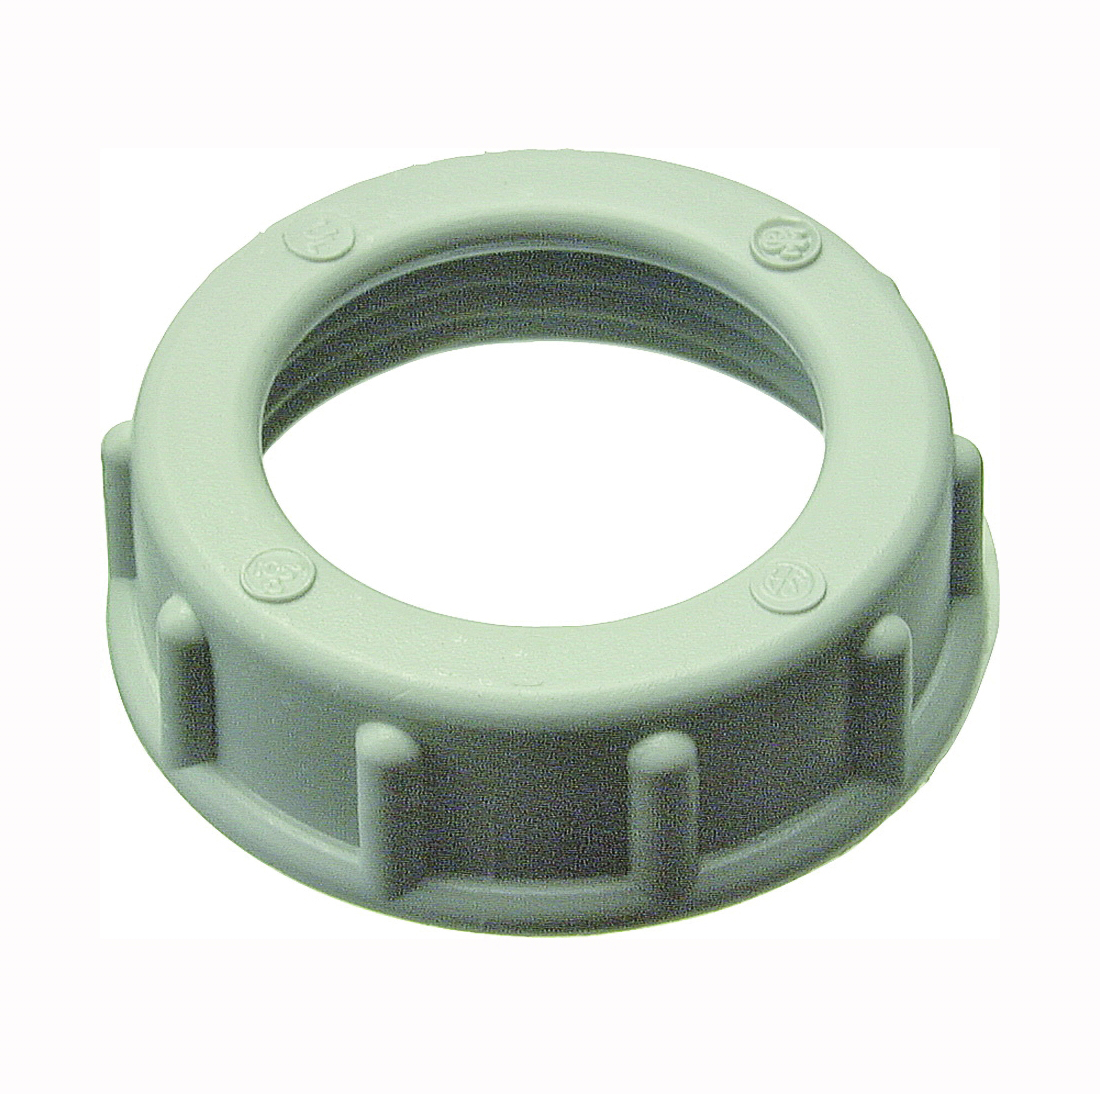 Picture of Halex 75207B Conduit Bushing, 3/4 in Trade, Thermoplastic